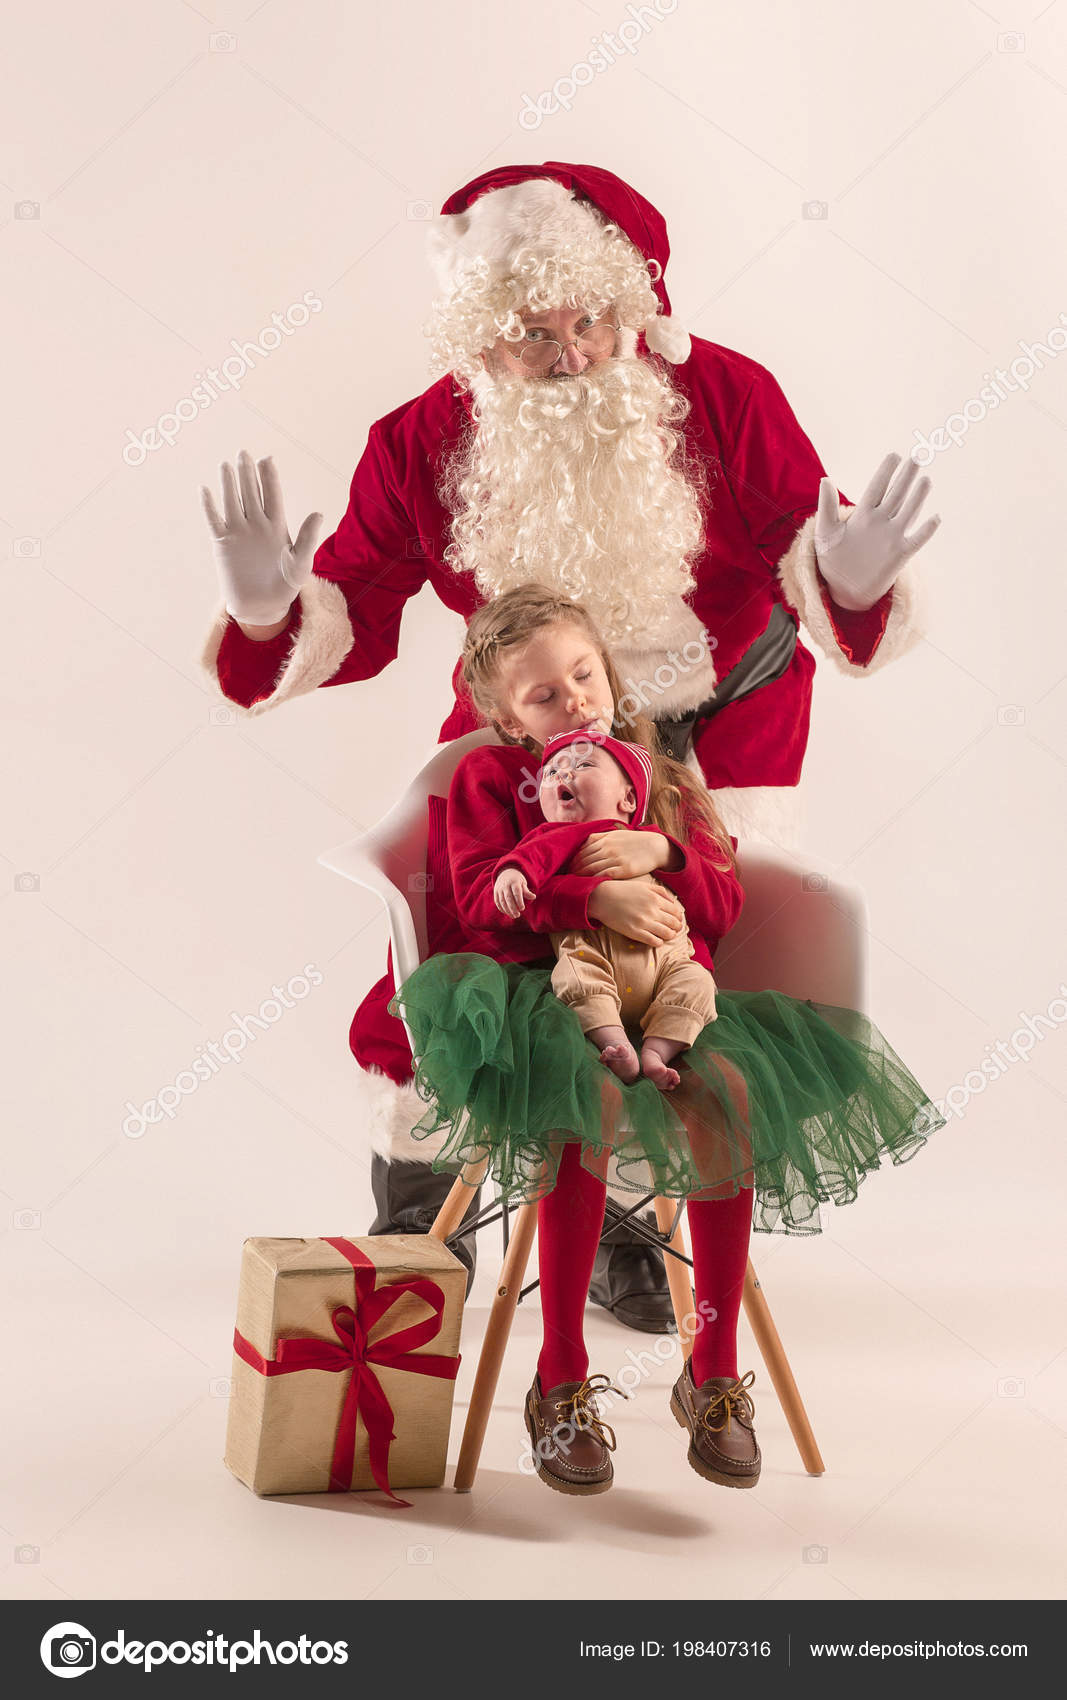 e4addf824a8f0 Christmas portrait of cute little newborn baby girl, pretty teen sister,  dressed in christmas clothes and man wearing santa costume and hat, studio  shot, ...